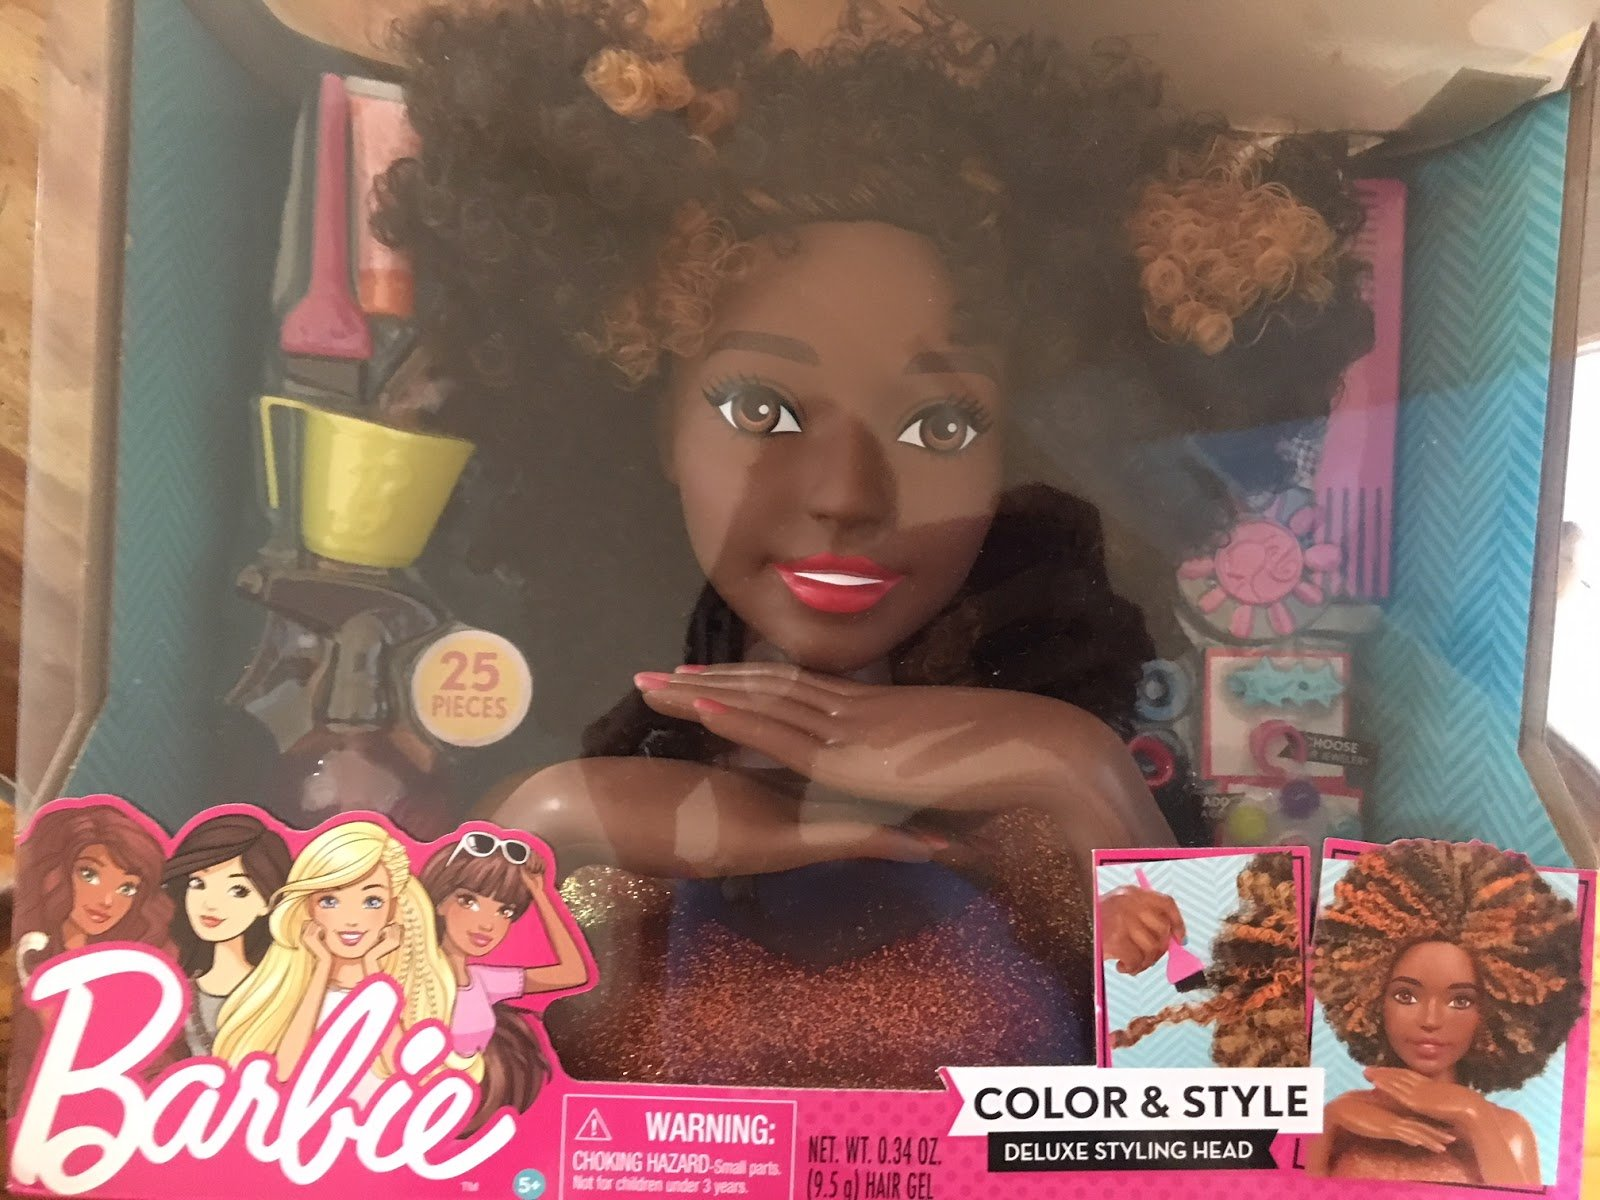 The Mattel Barbie Styling Head is Now Available. Here's How to Get It!